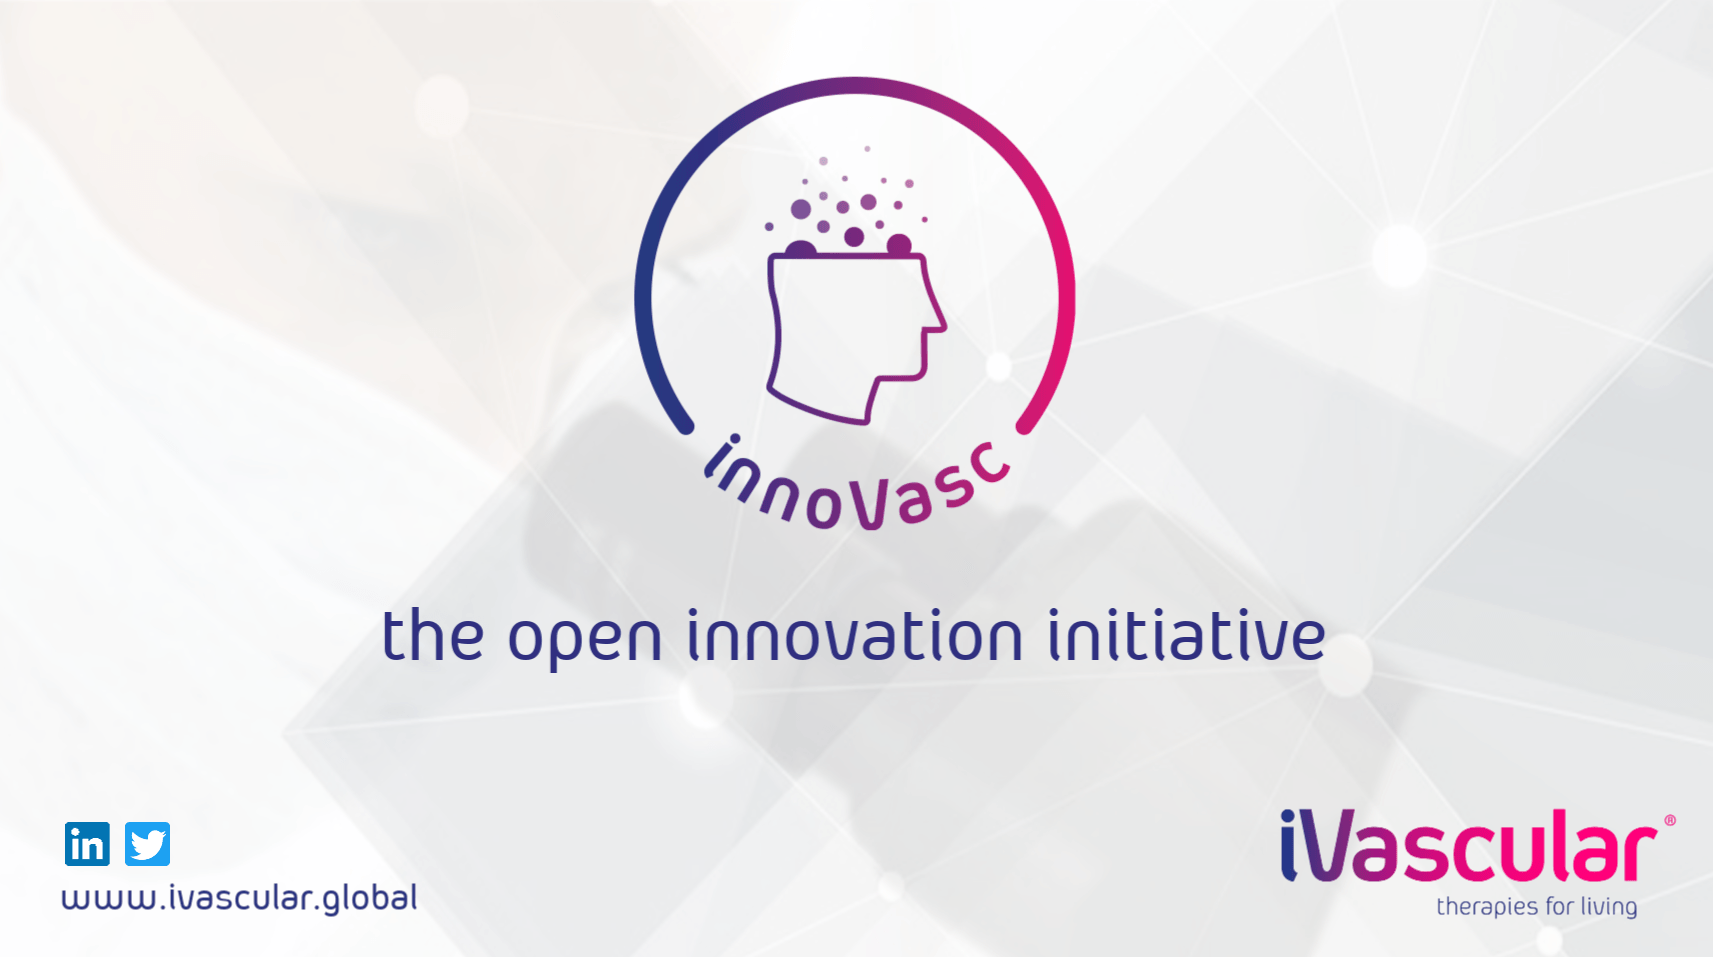 The open innovation initiative